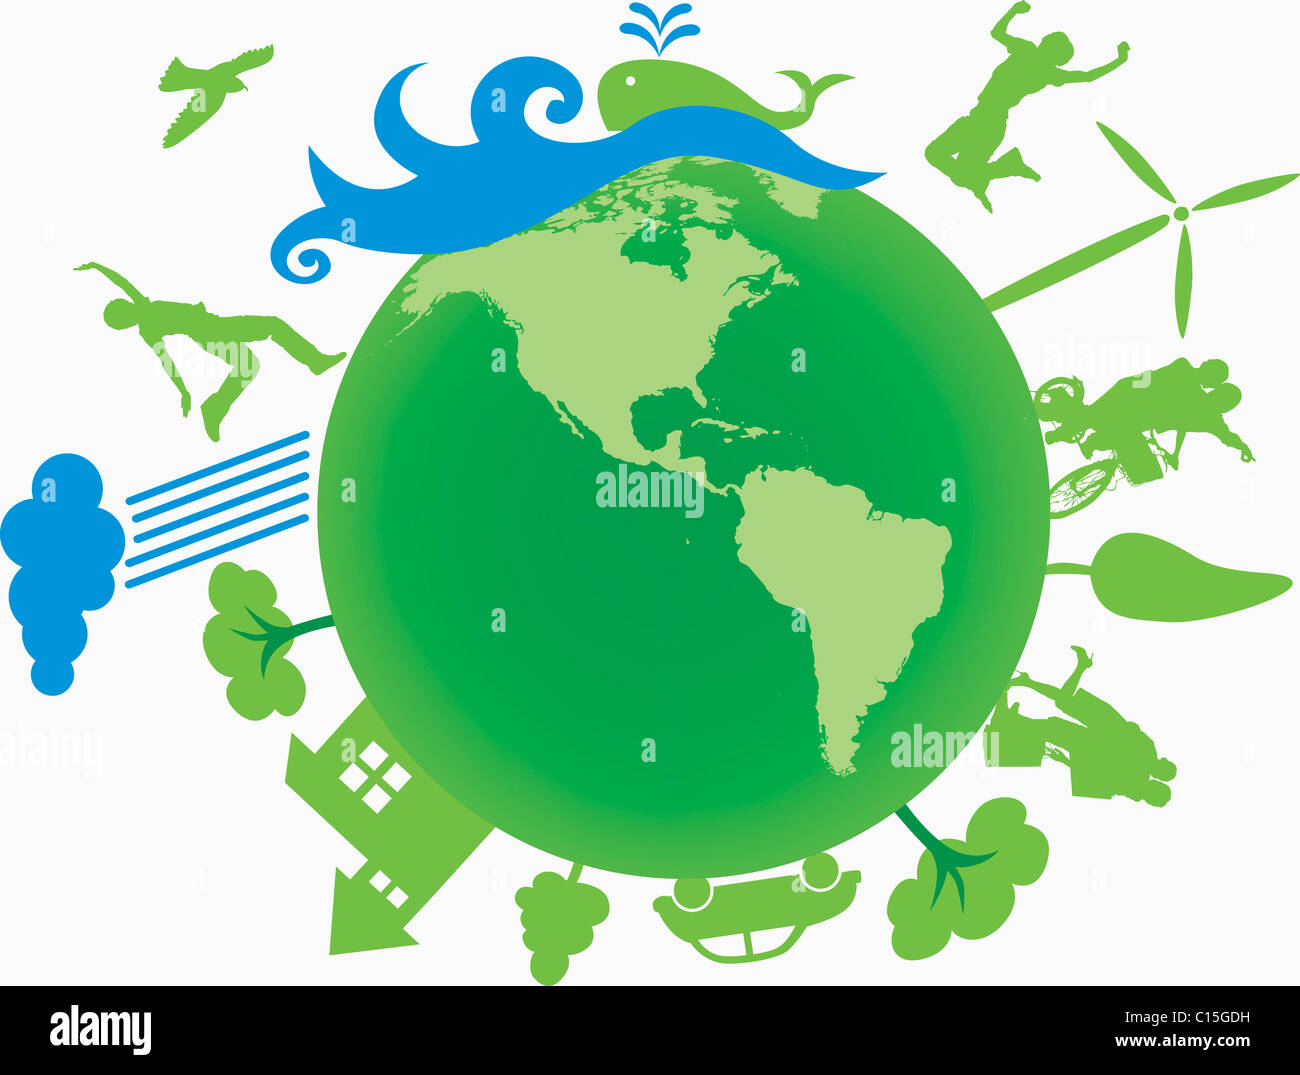 green earth eco friendly - Stock Image